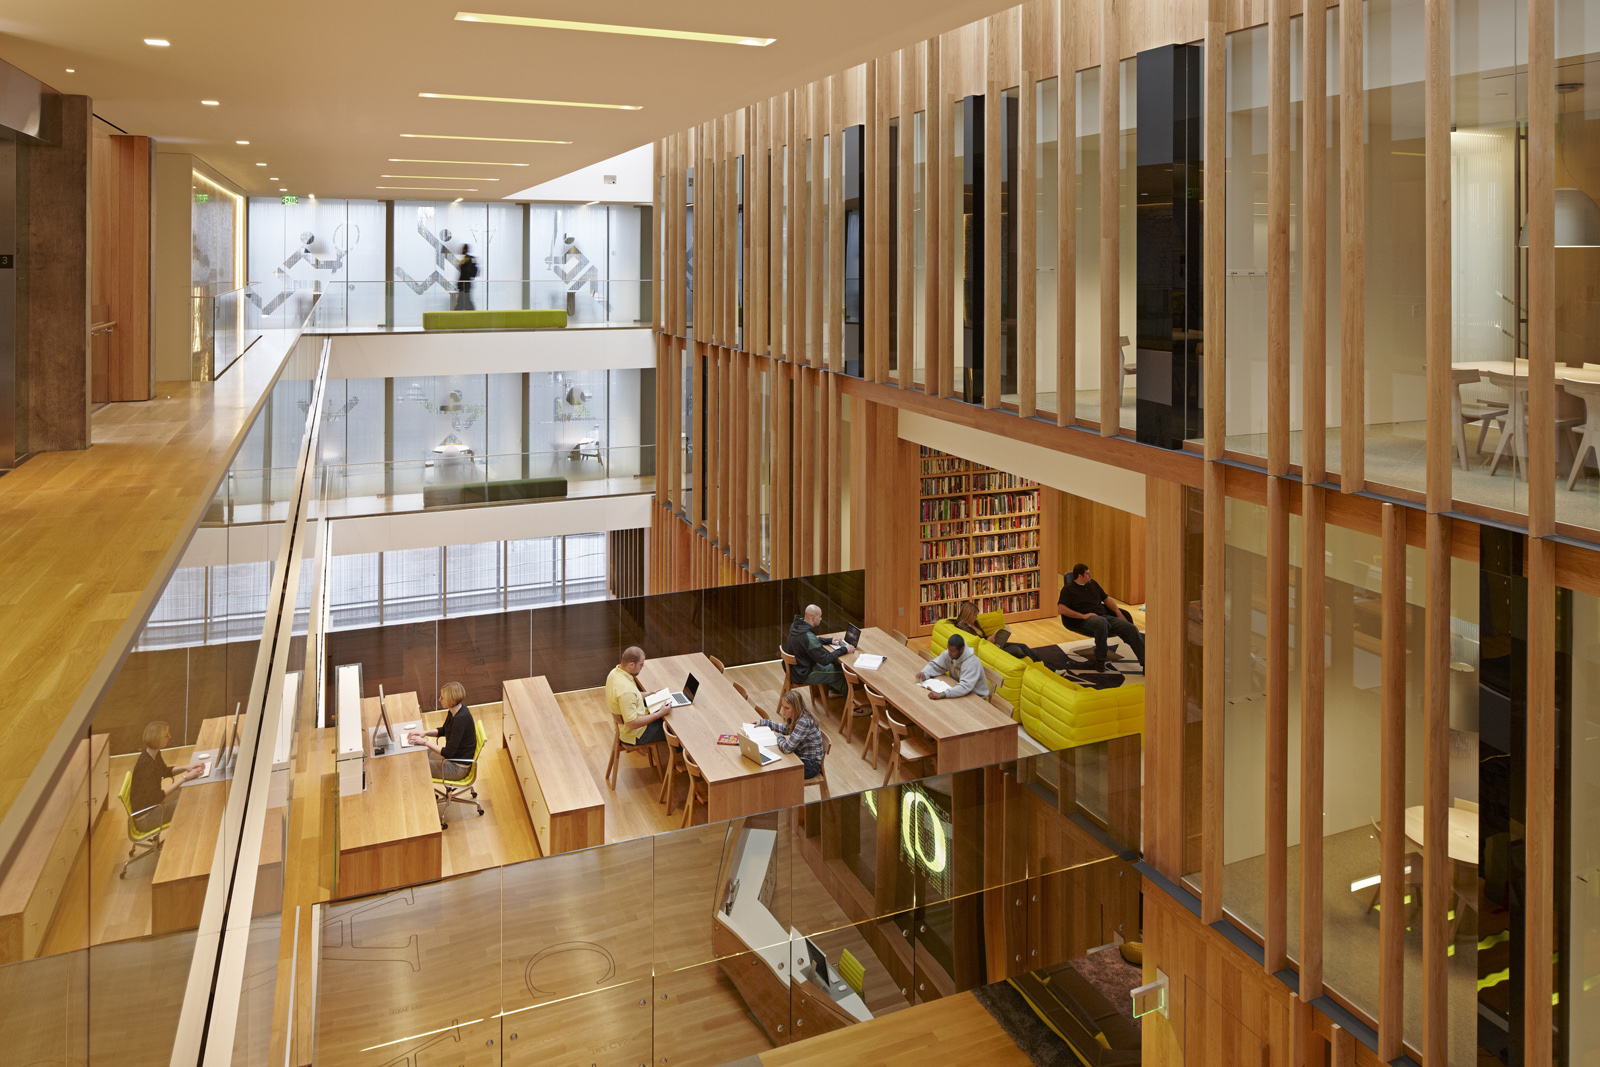 """The John E. Jaqua Academic Center for Student Athletes in Eugene, Oregon. Designed by ZGF Architects LLP. Winner of the 2011 Institute Honor Award for Interior Architecture. Project description: """"The Jaqua Center explores the limits of transparency and co"""